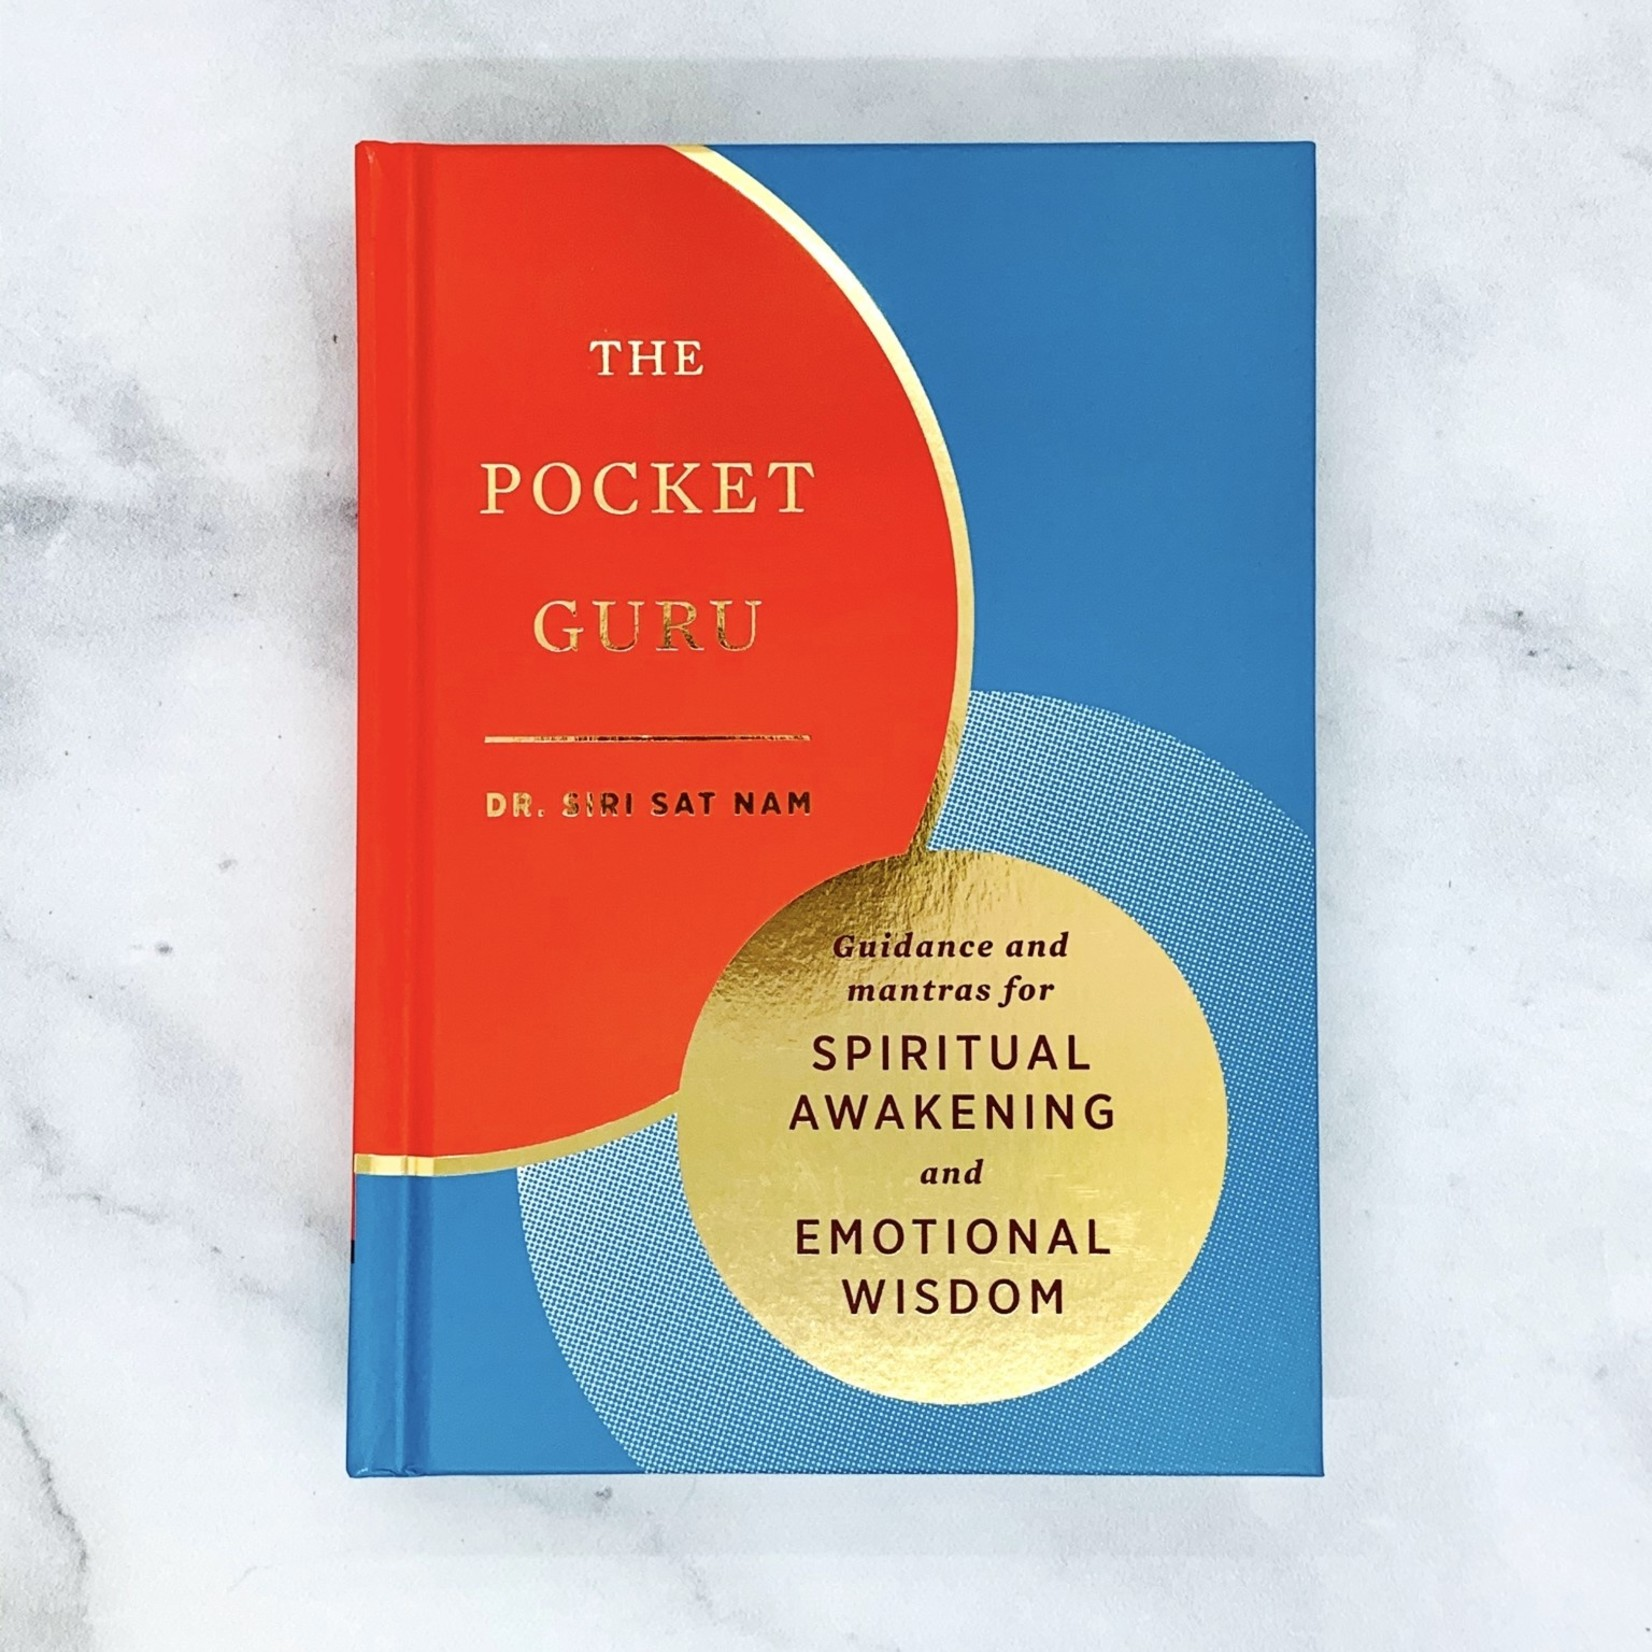 The Pocket Guru Guidance and Mantras for Spiritual Awakening and Emotional Wisdom